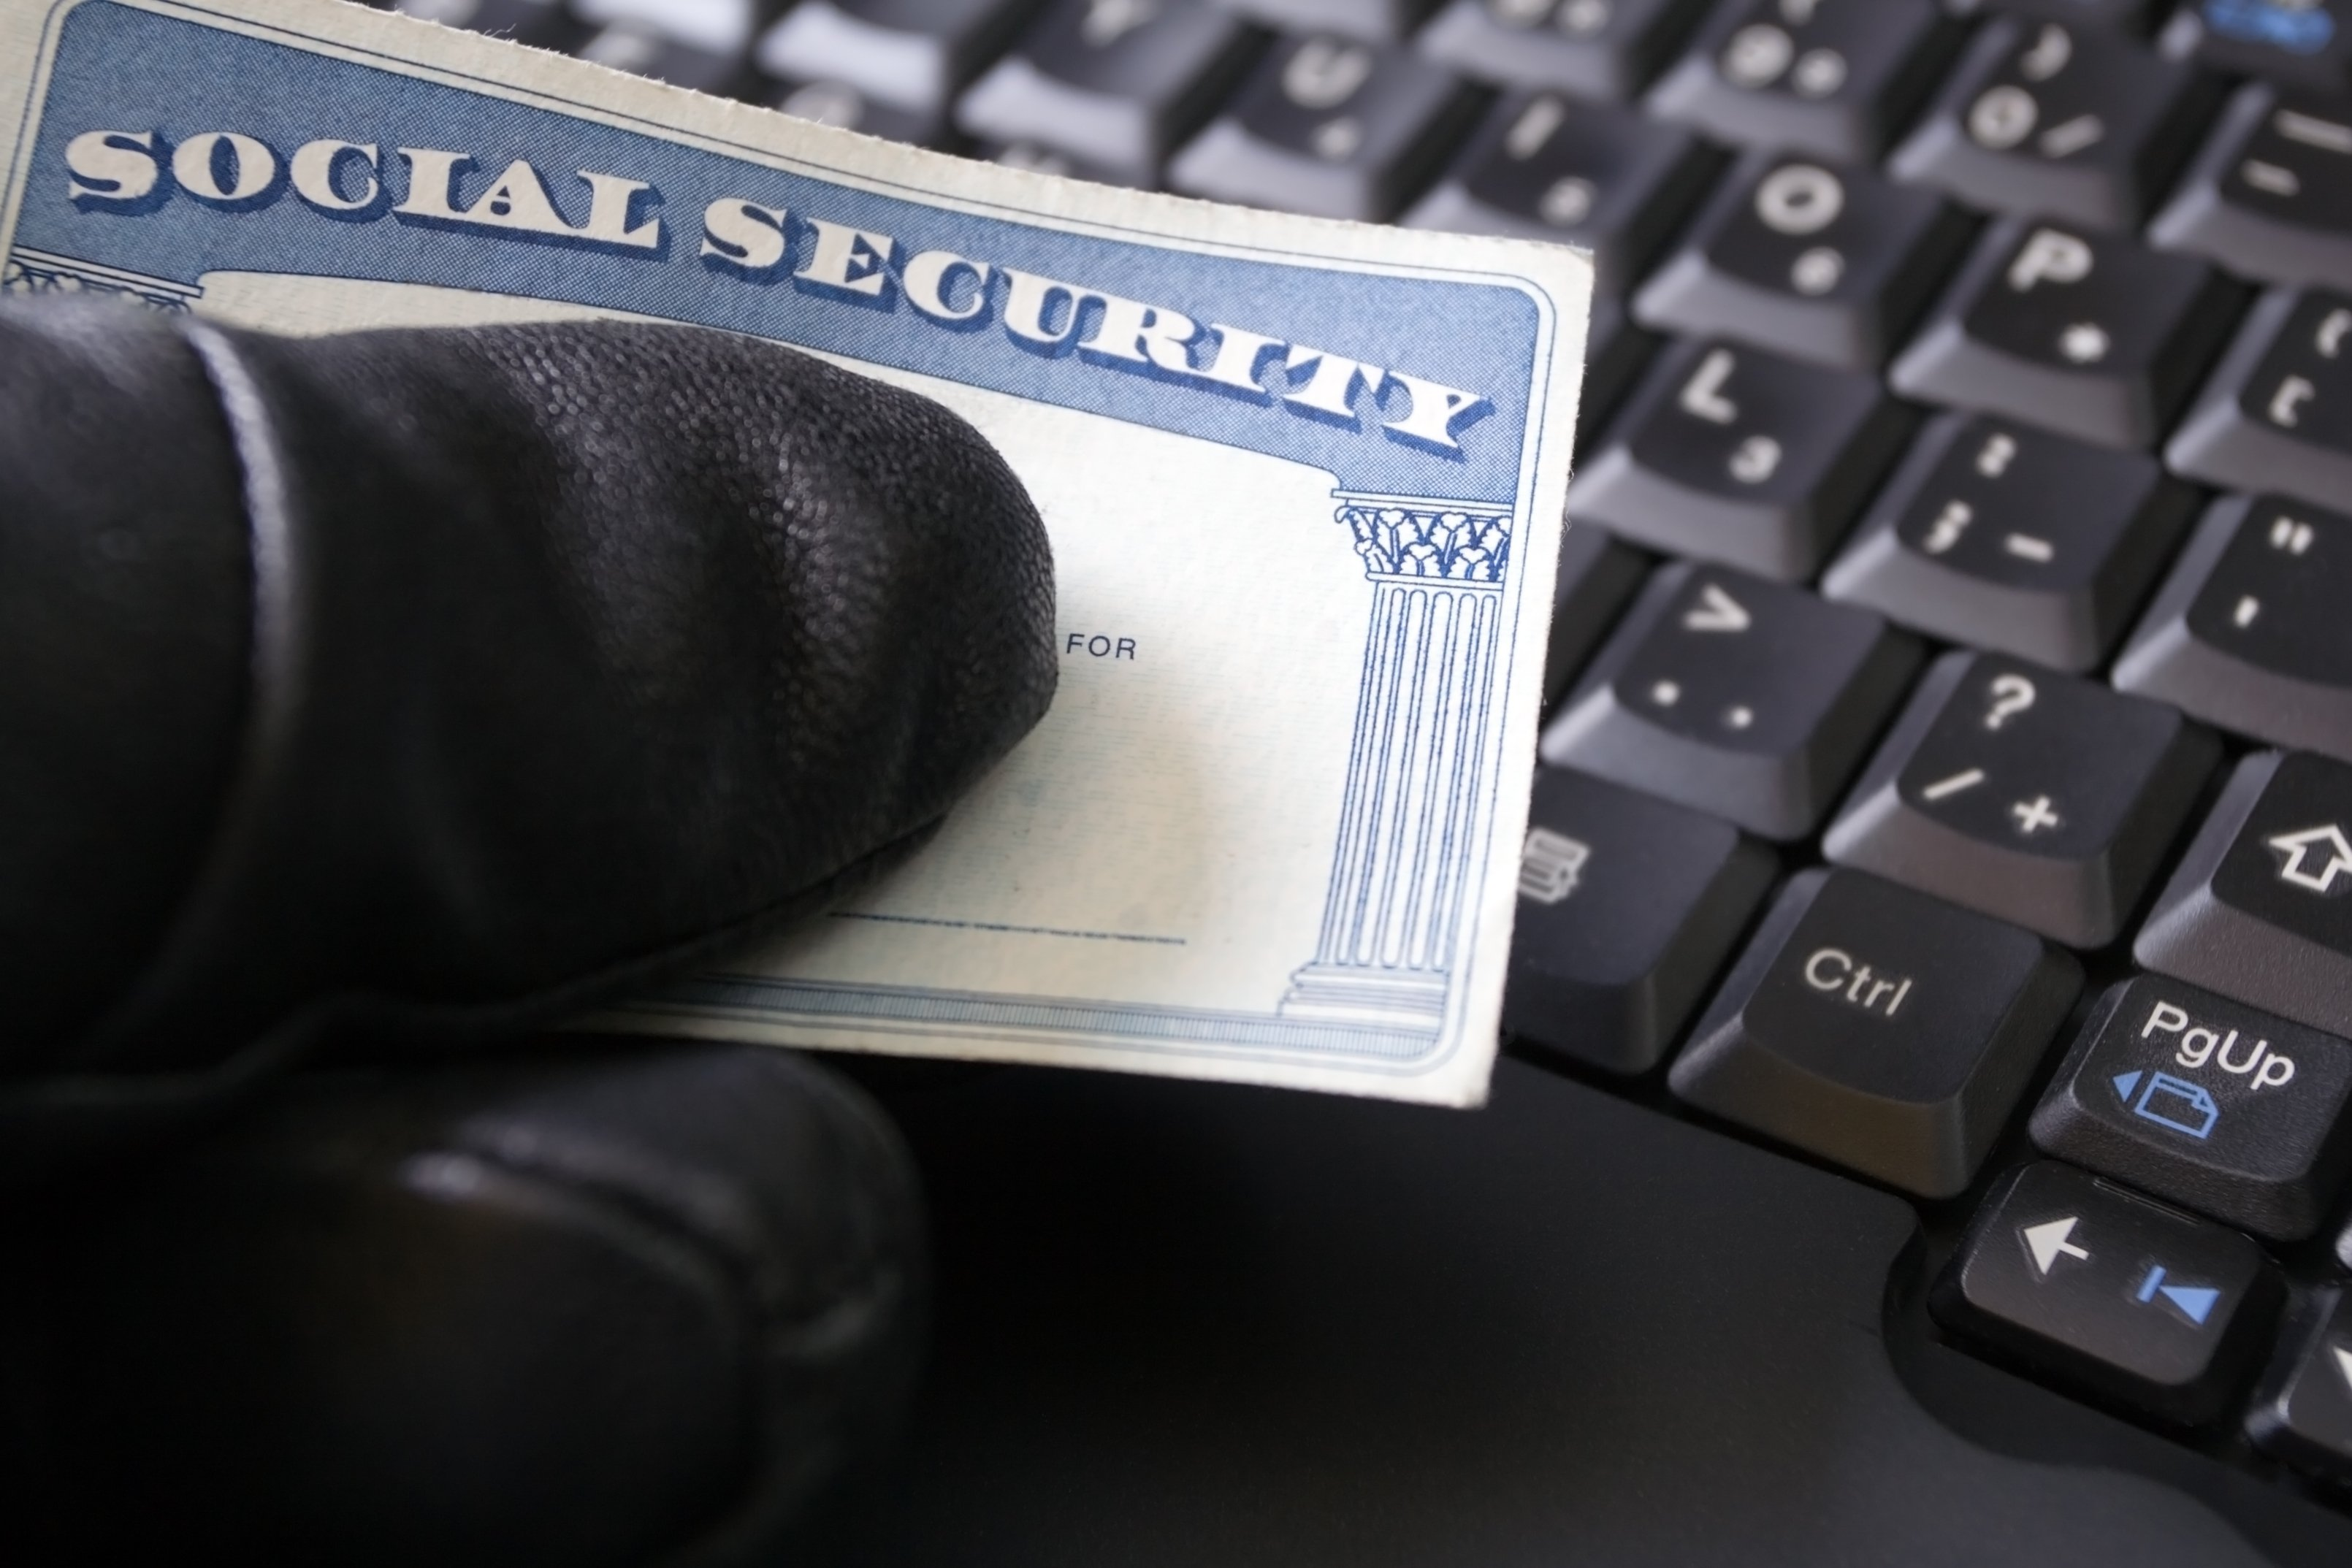 Social security identity thief